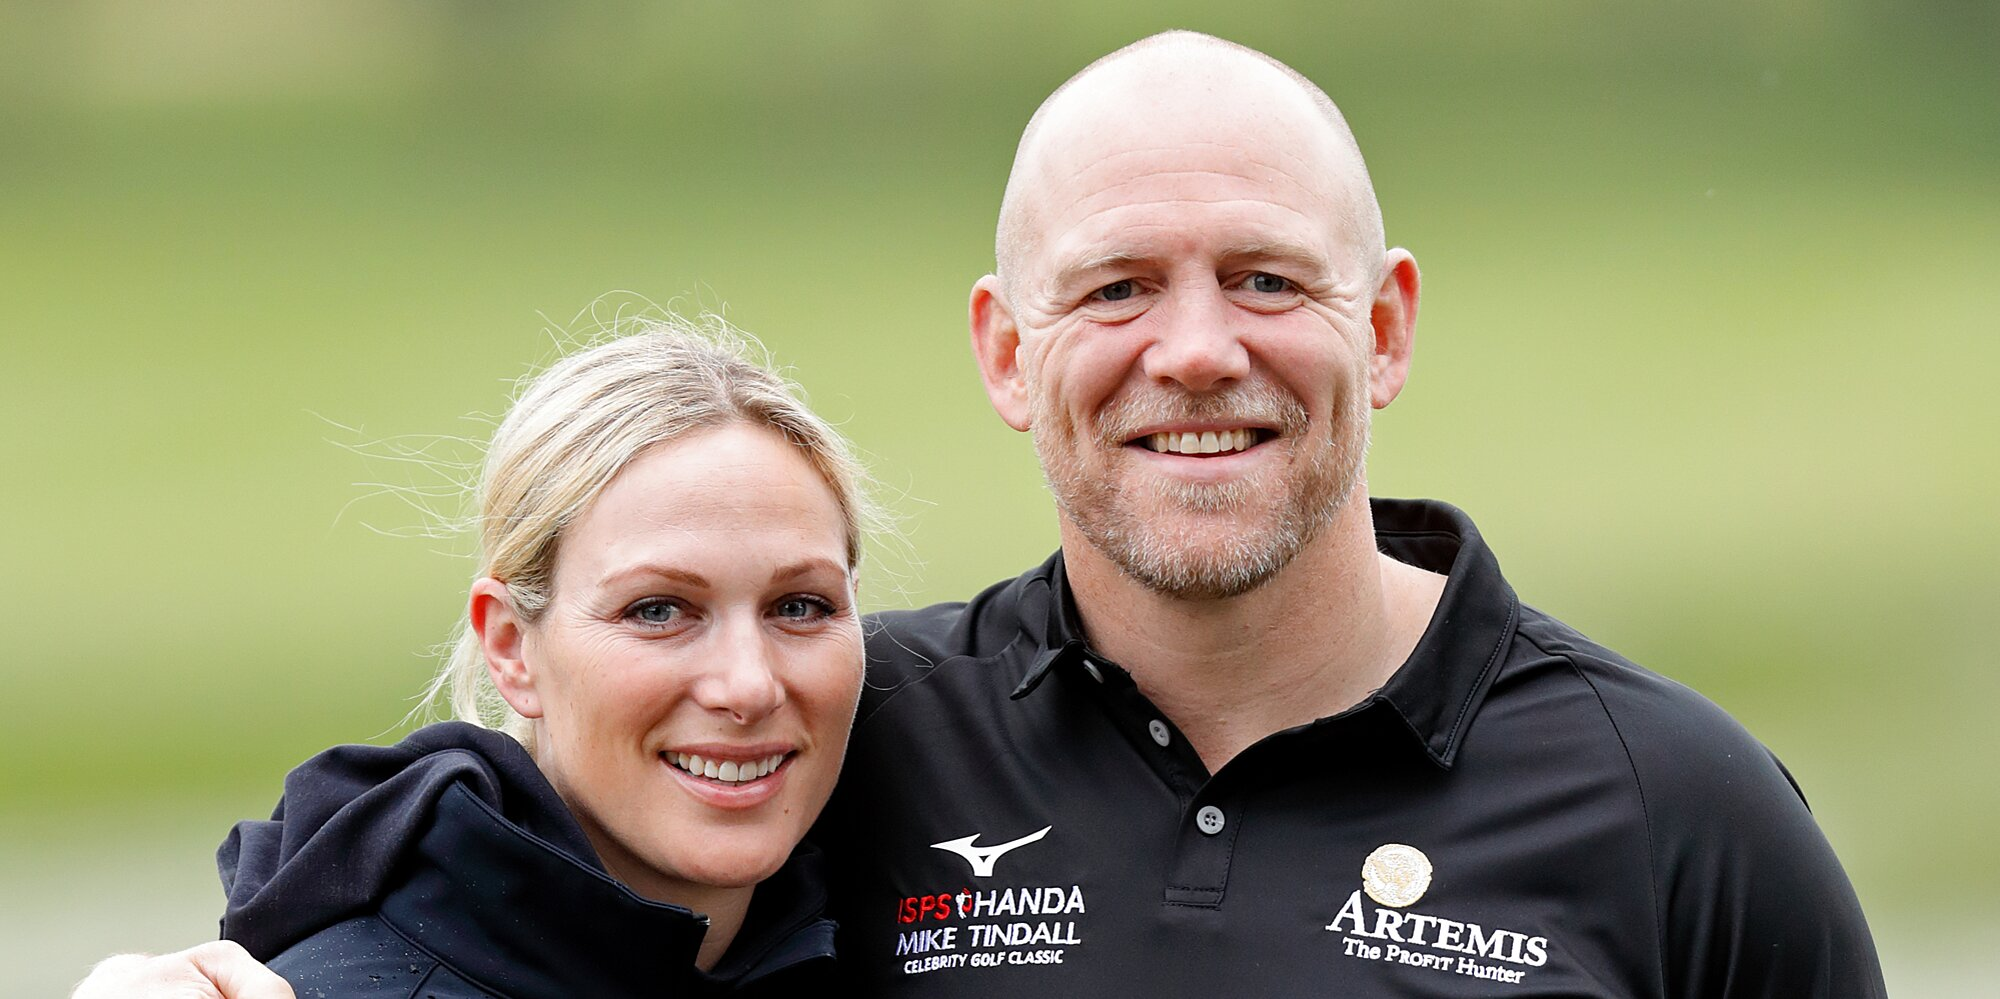 Mike Tindall Praises 'Brilliant' Wife Zara for Supporting His Dad's Parkinson's Battle: 'She Gets It'